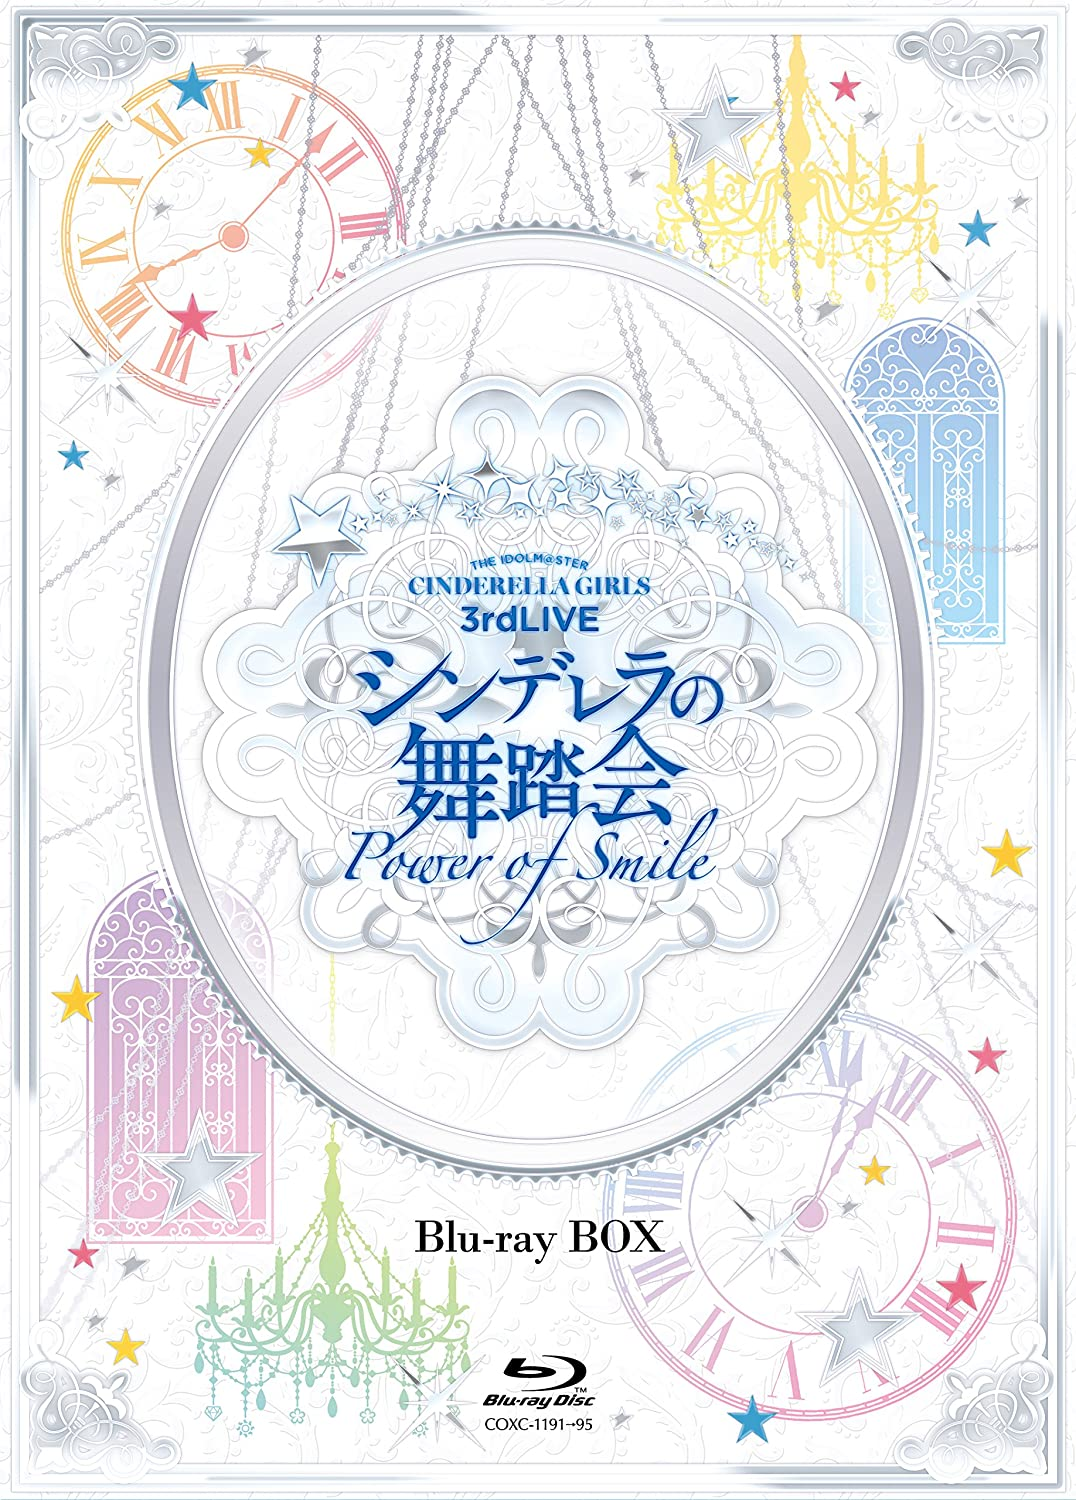 THE IDOLM@STER CINDERELLA GIRLS 3rdLIVE シンデレラの舞踏会 - Power of Smile - Blu-ray BOX B01I2YSSI6